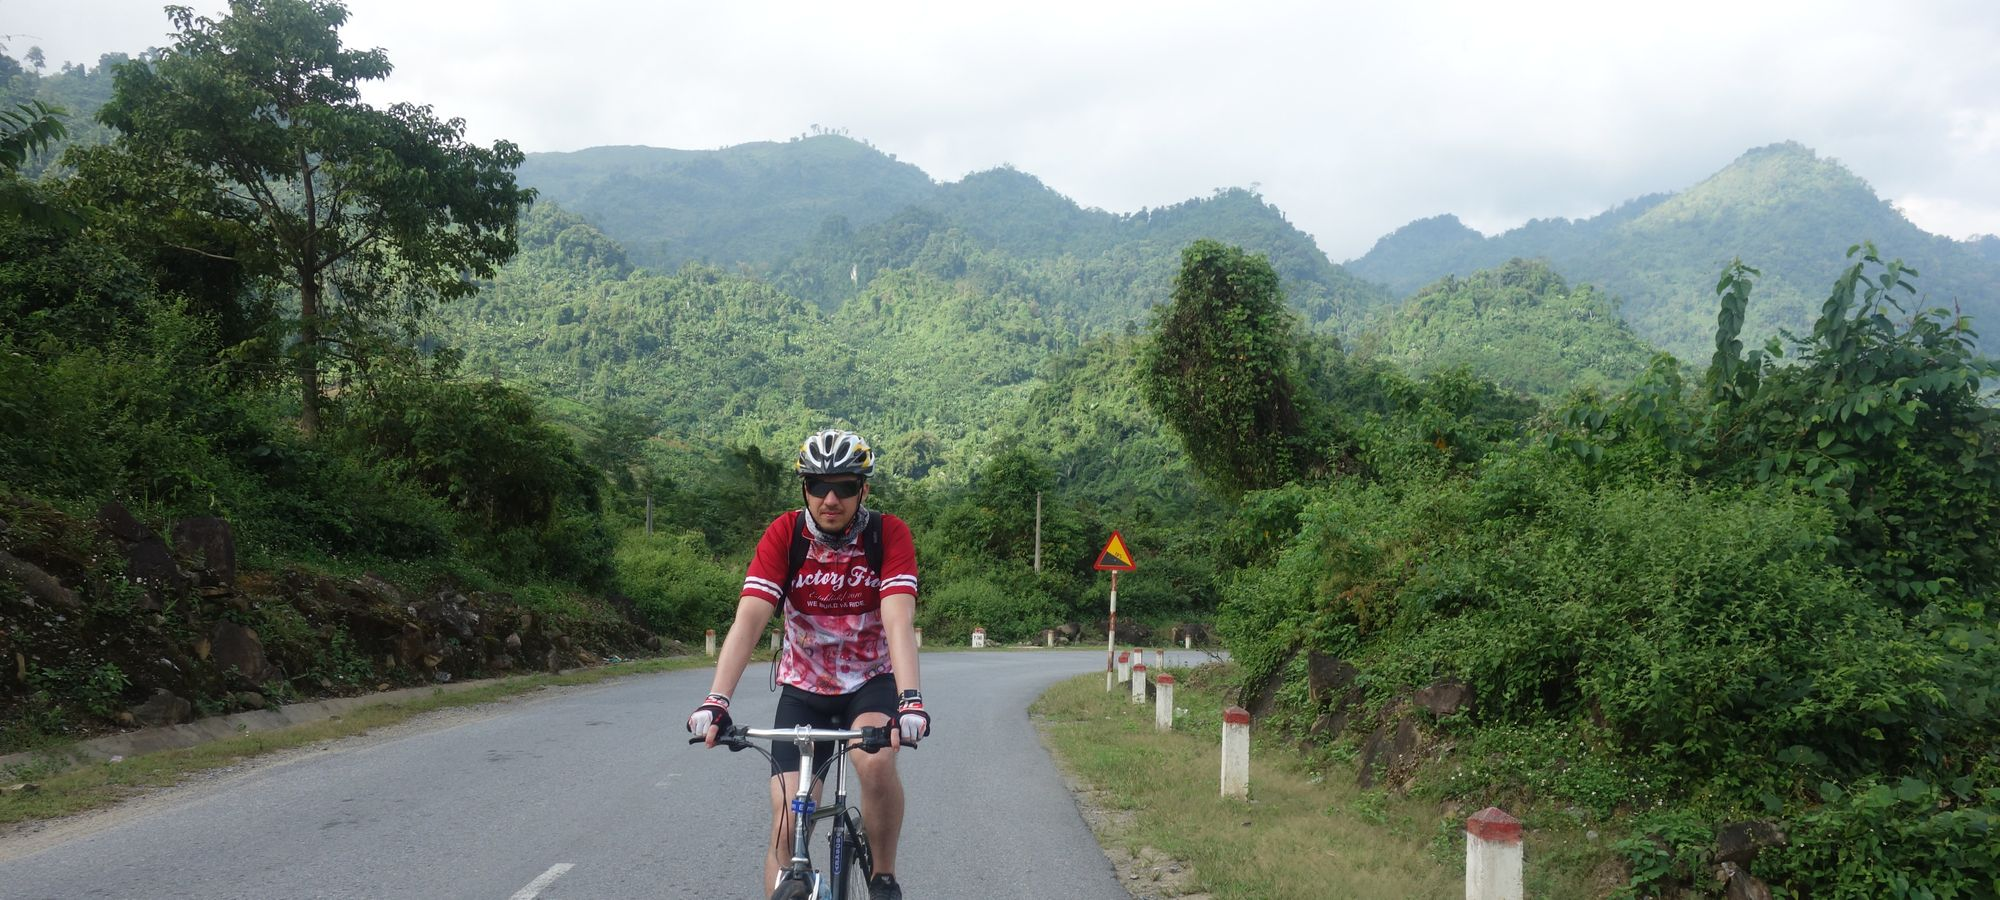 Photos from our 3 Countries 16 Days Cycling Holiday